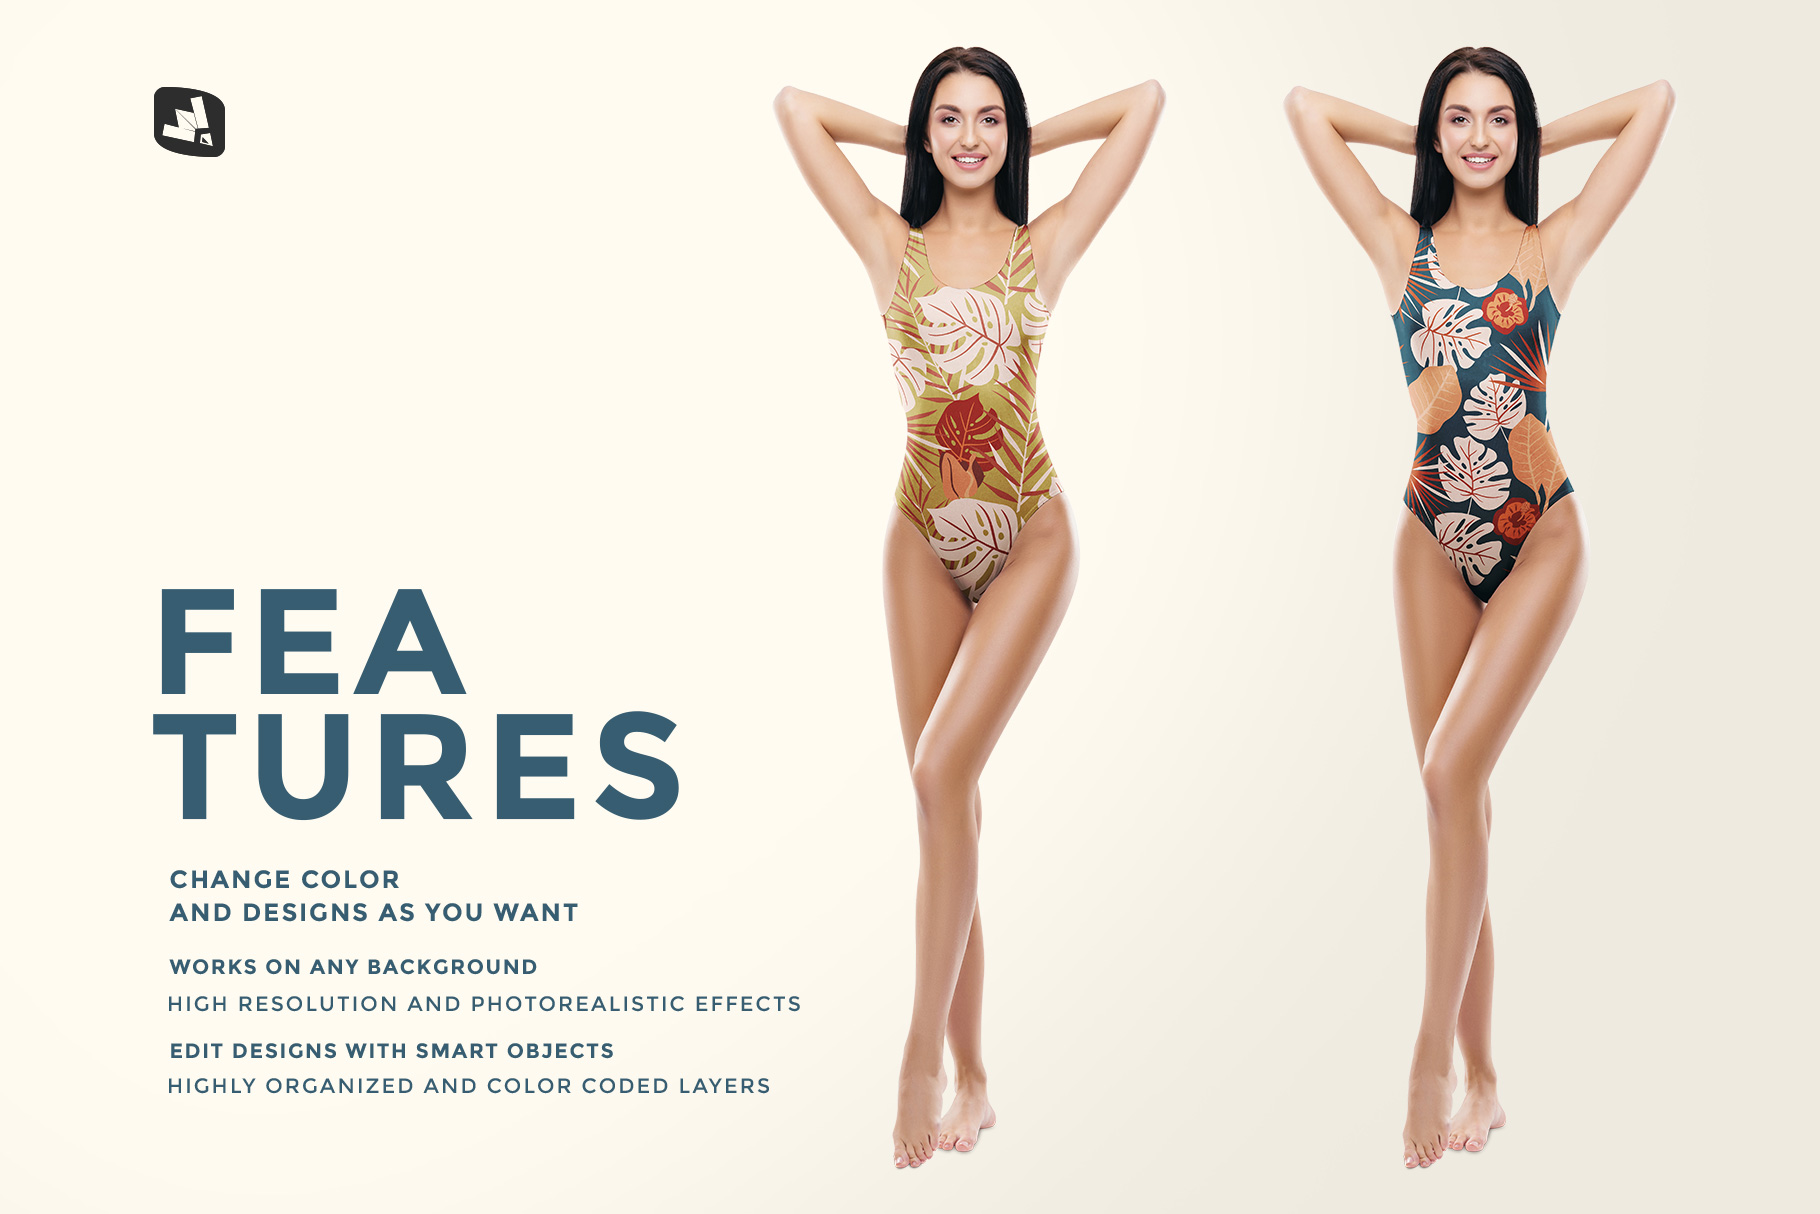 features of the women's swimsuit mockup